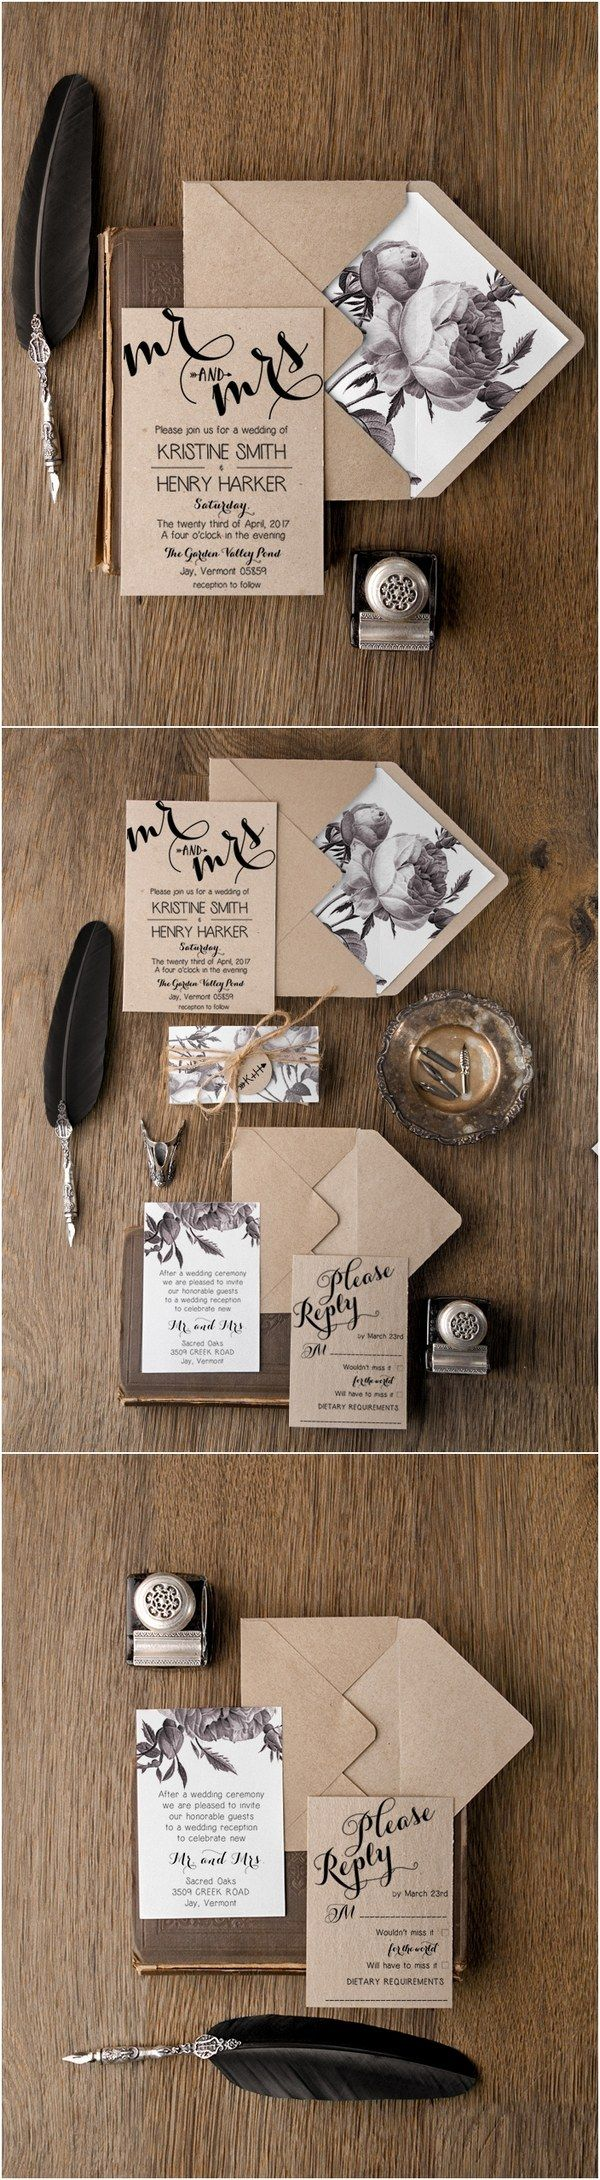 wedding invitations cute wedding invitations Rustic simple wedding invitations Still masculine enough for Ian and his man but classy and super pretty